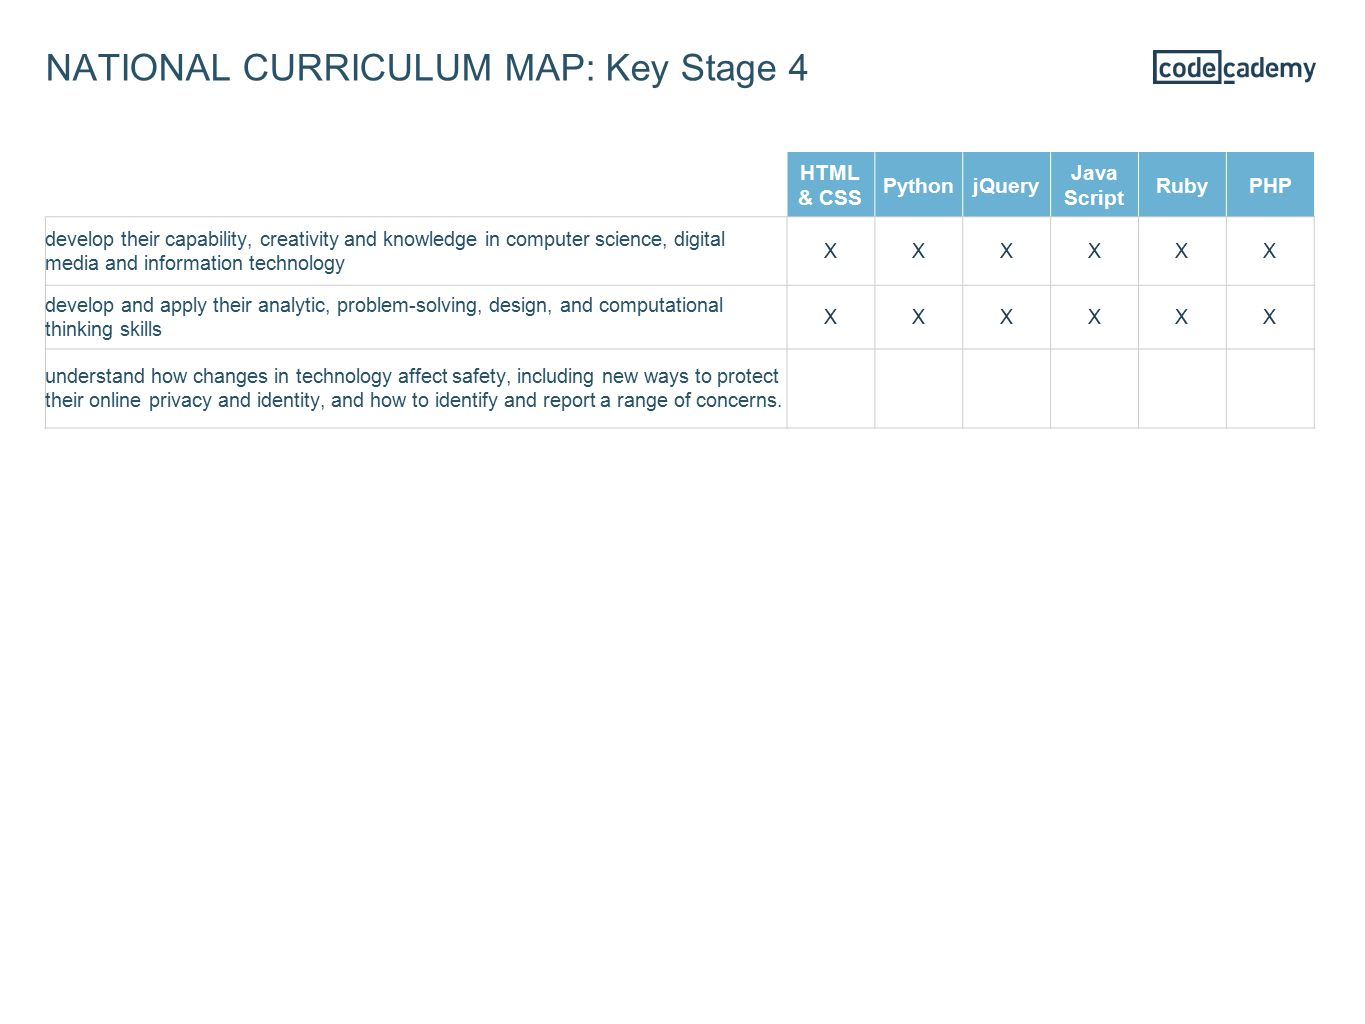 NATIONAL CURRICULUM MAP: Key Stage 4